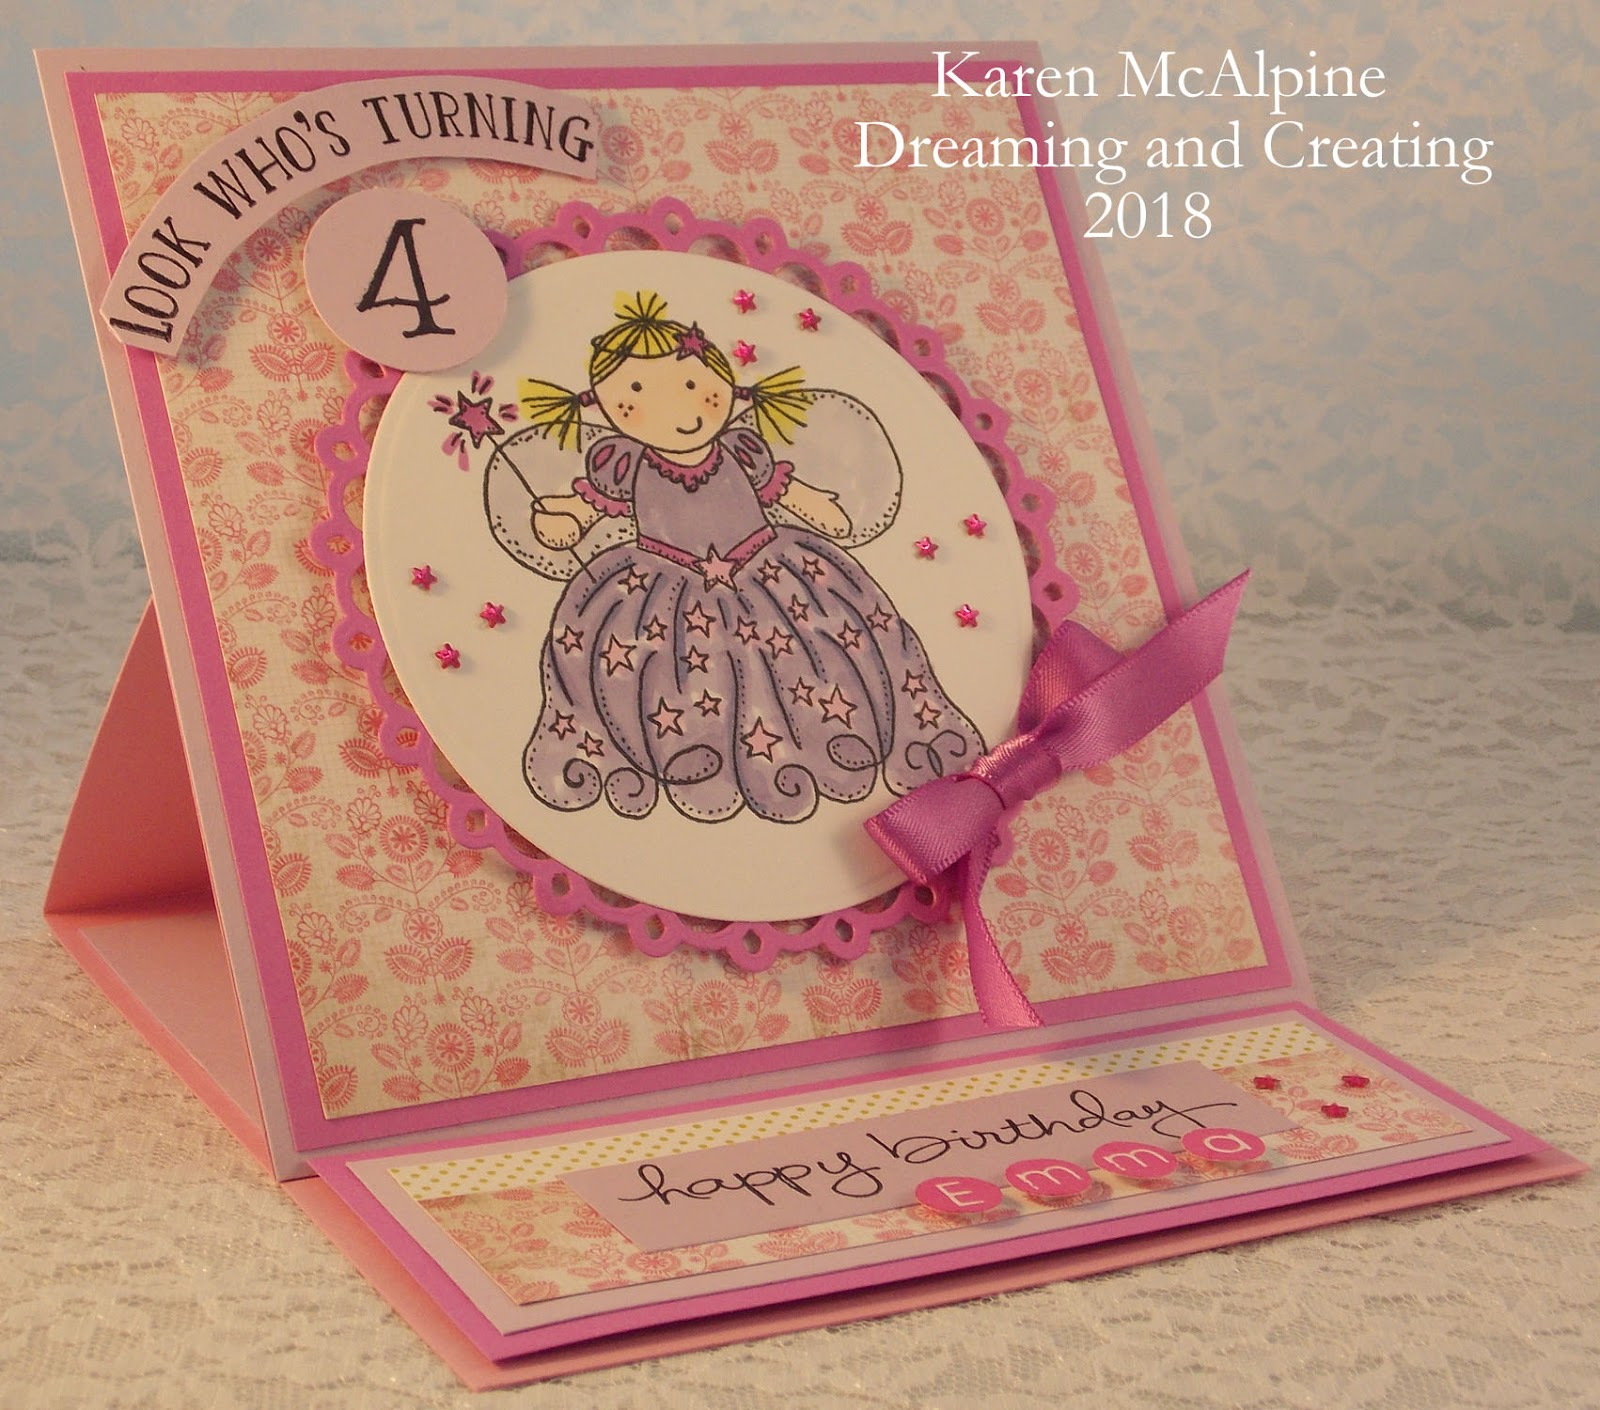 Stopping In To Share A Cute Birthday Card Perfect For Child This Was Made Sweet Four Year Old Here Favorite Colors Are Pink And Purple